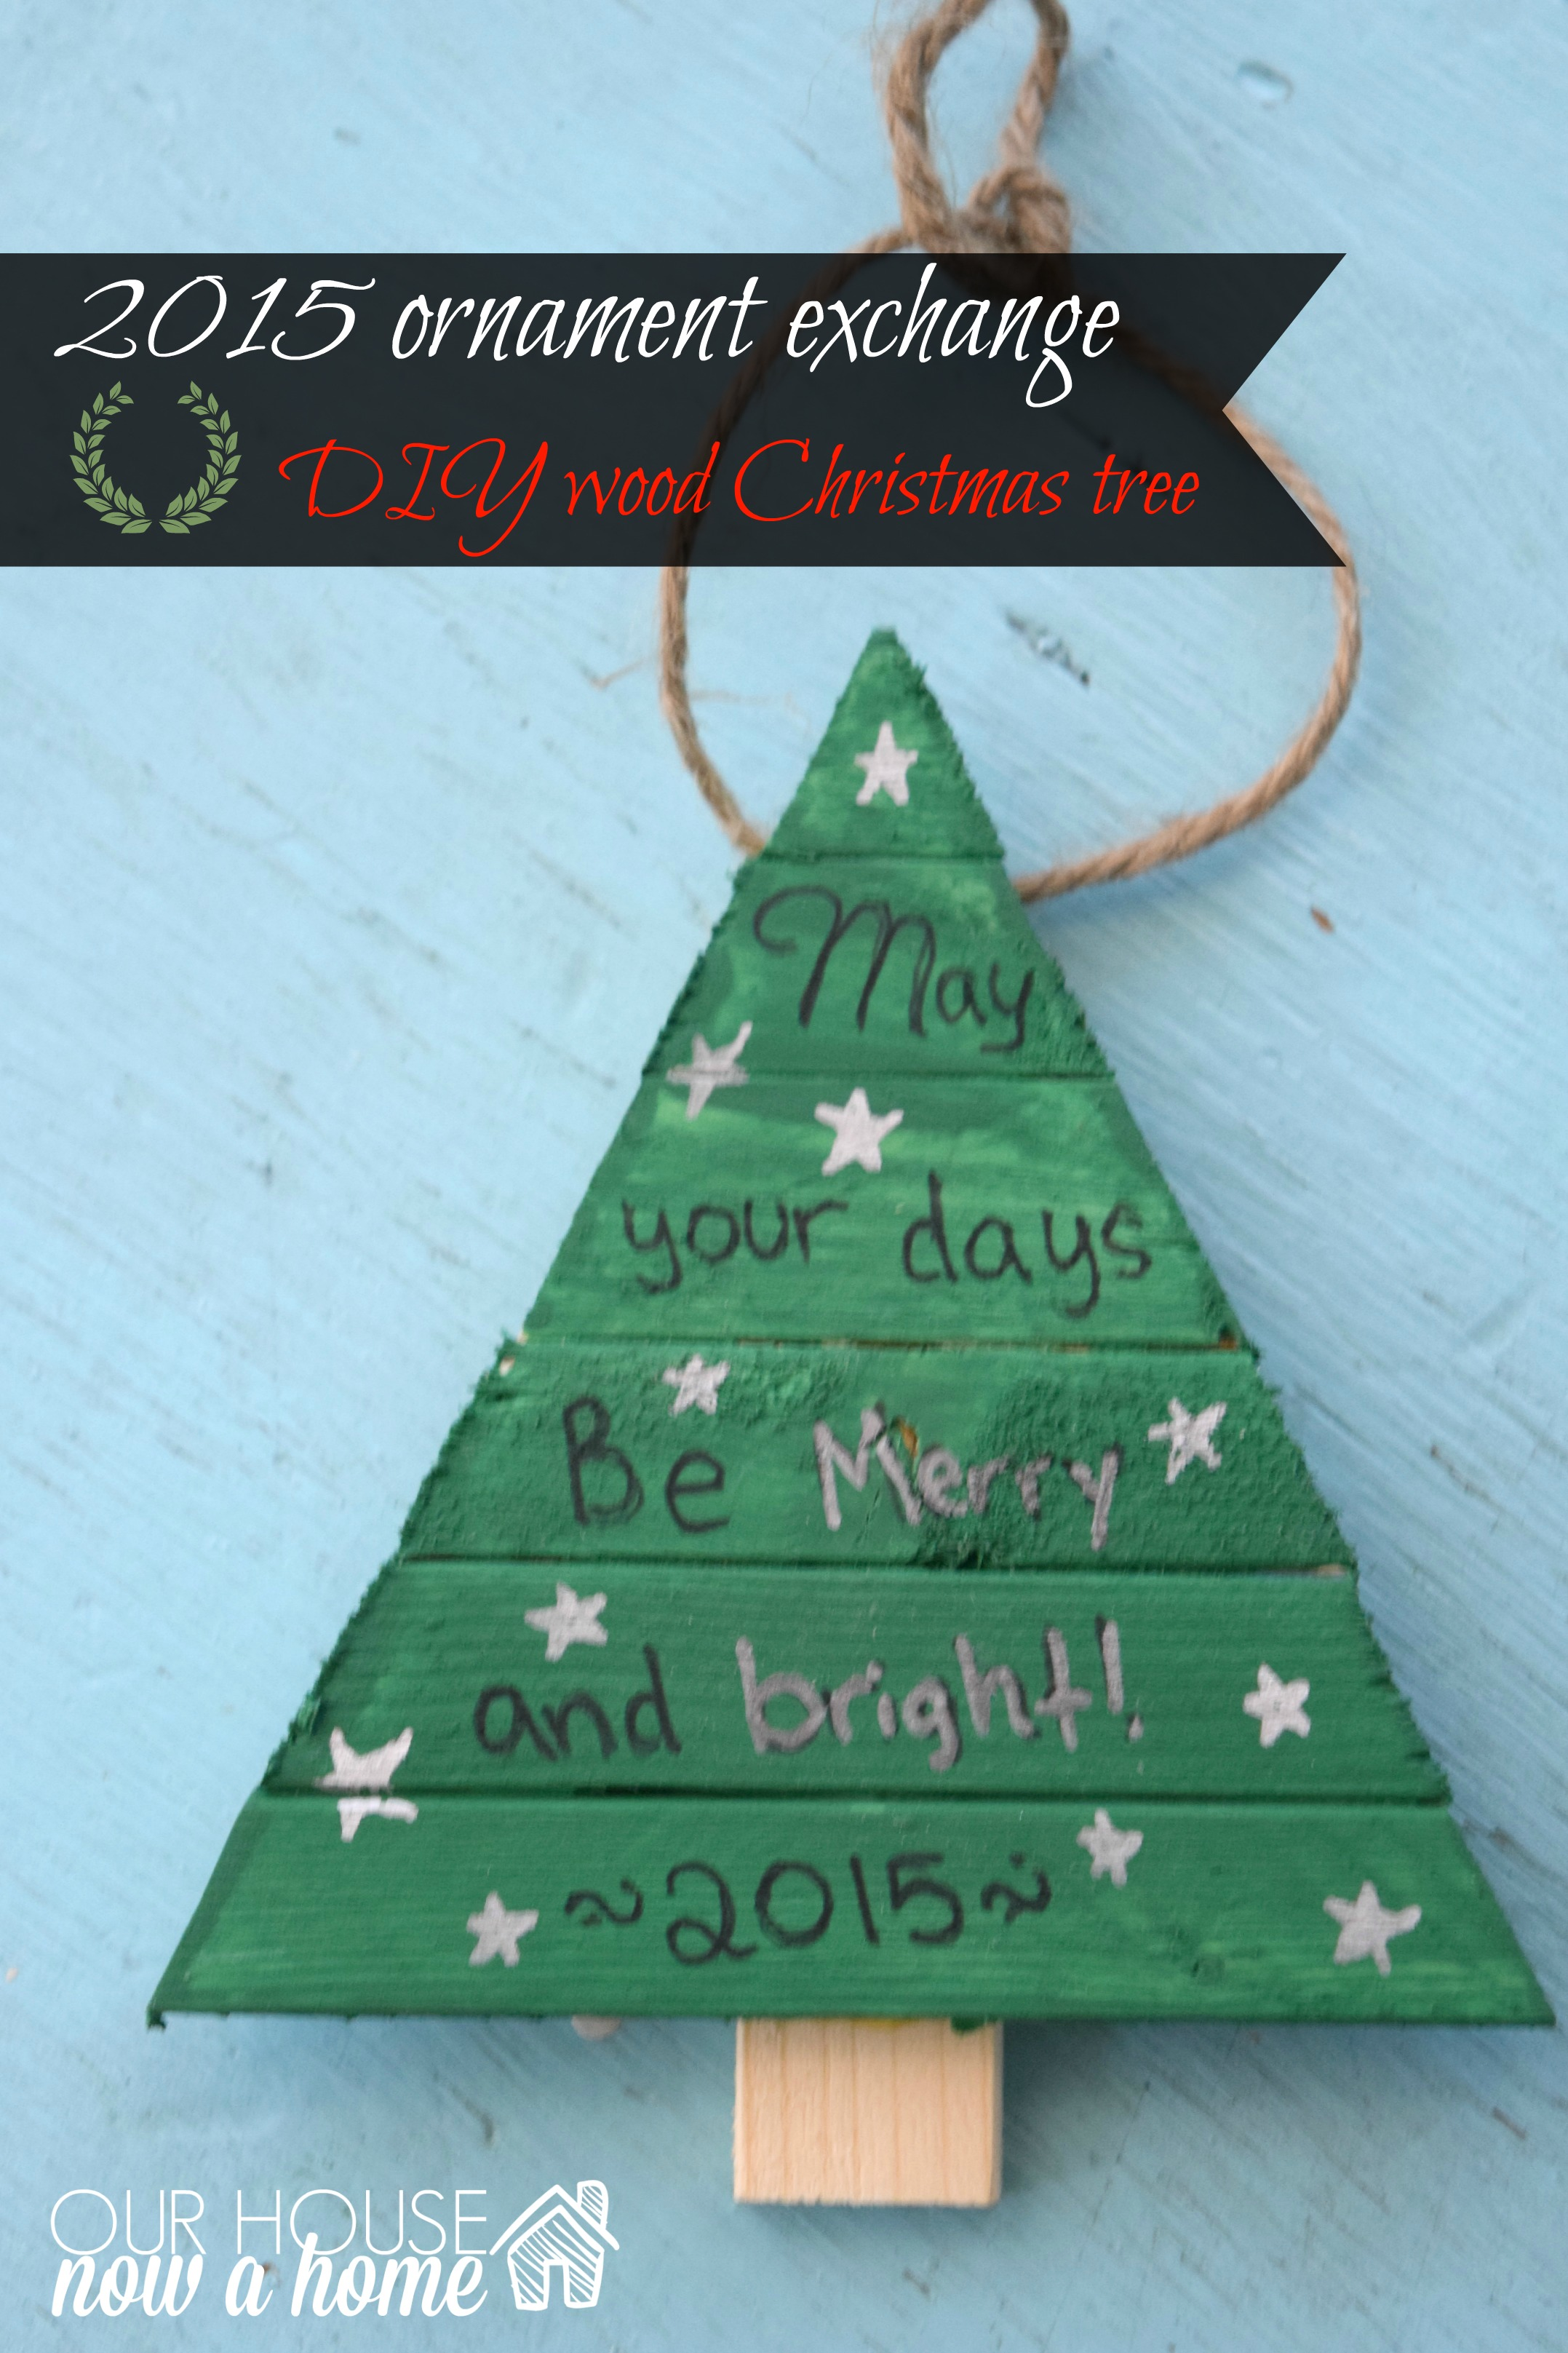 Christmas ornament exchange- DIY wood Christmas tree